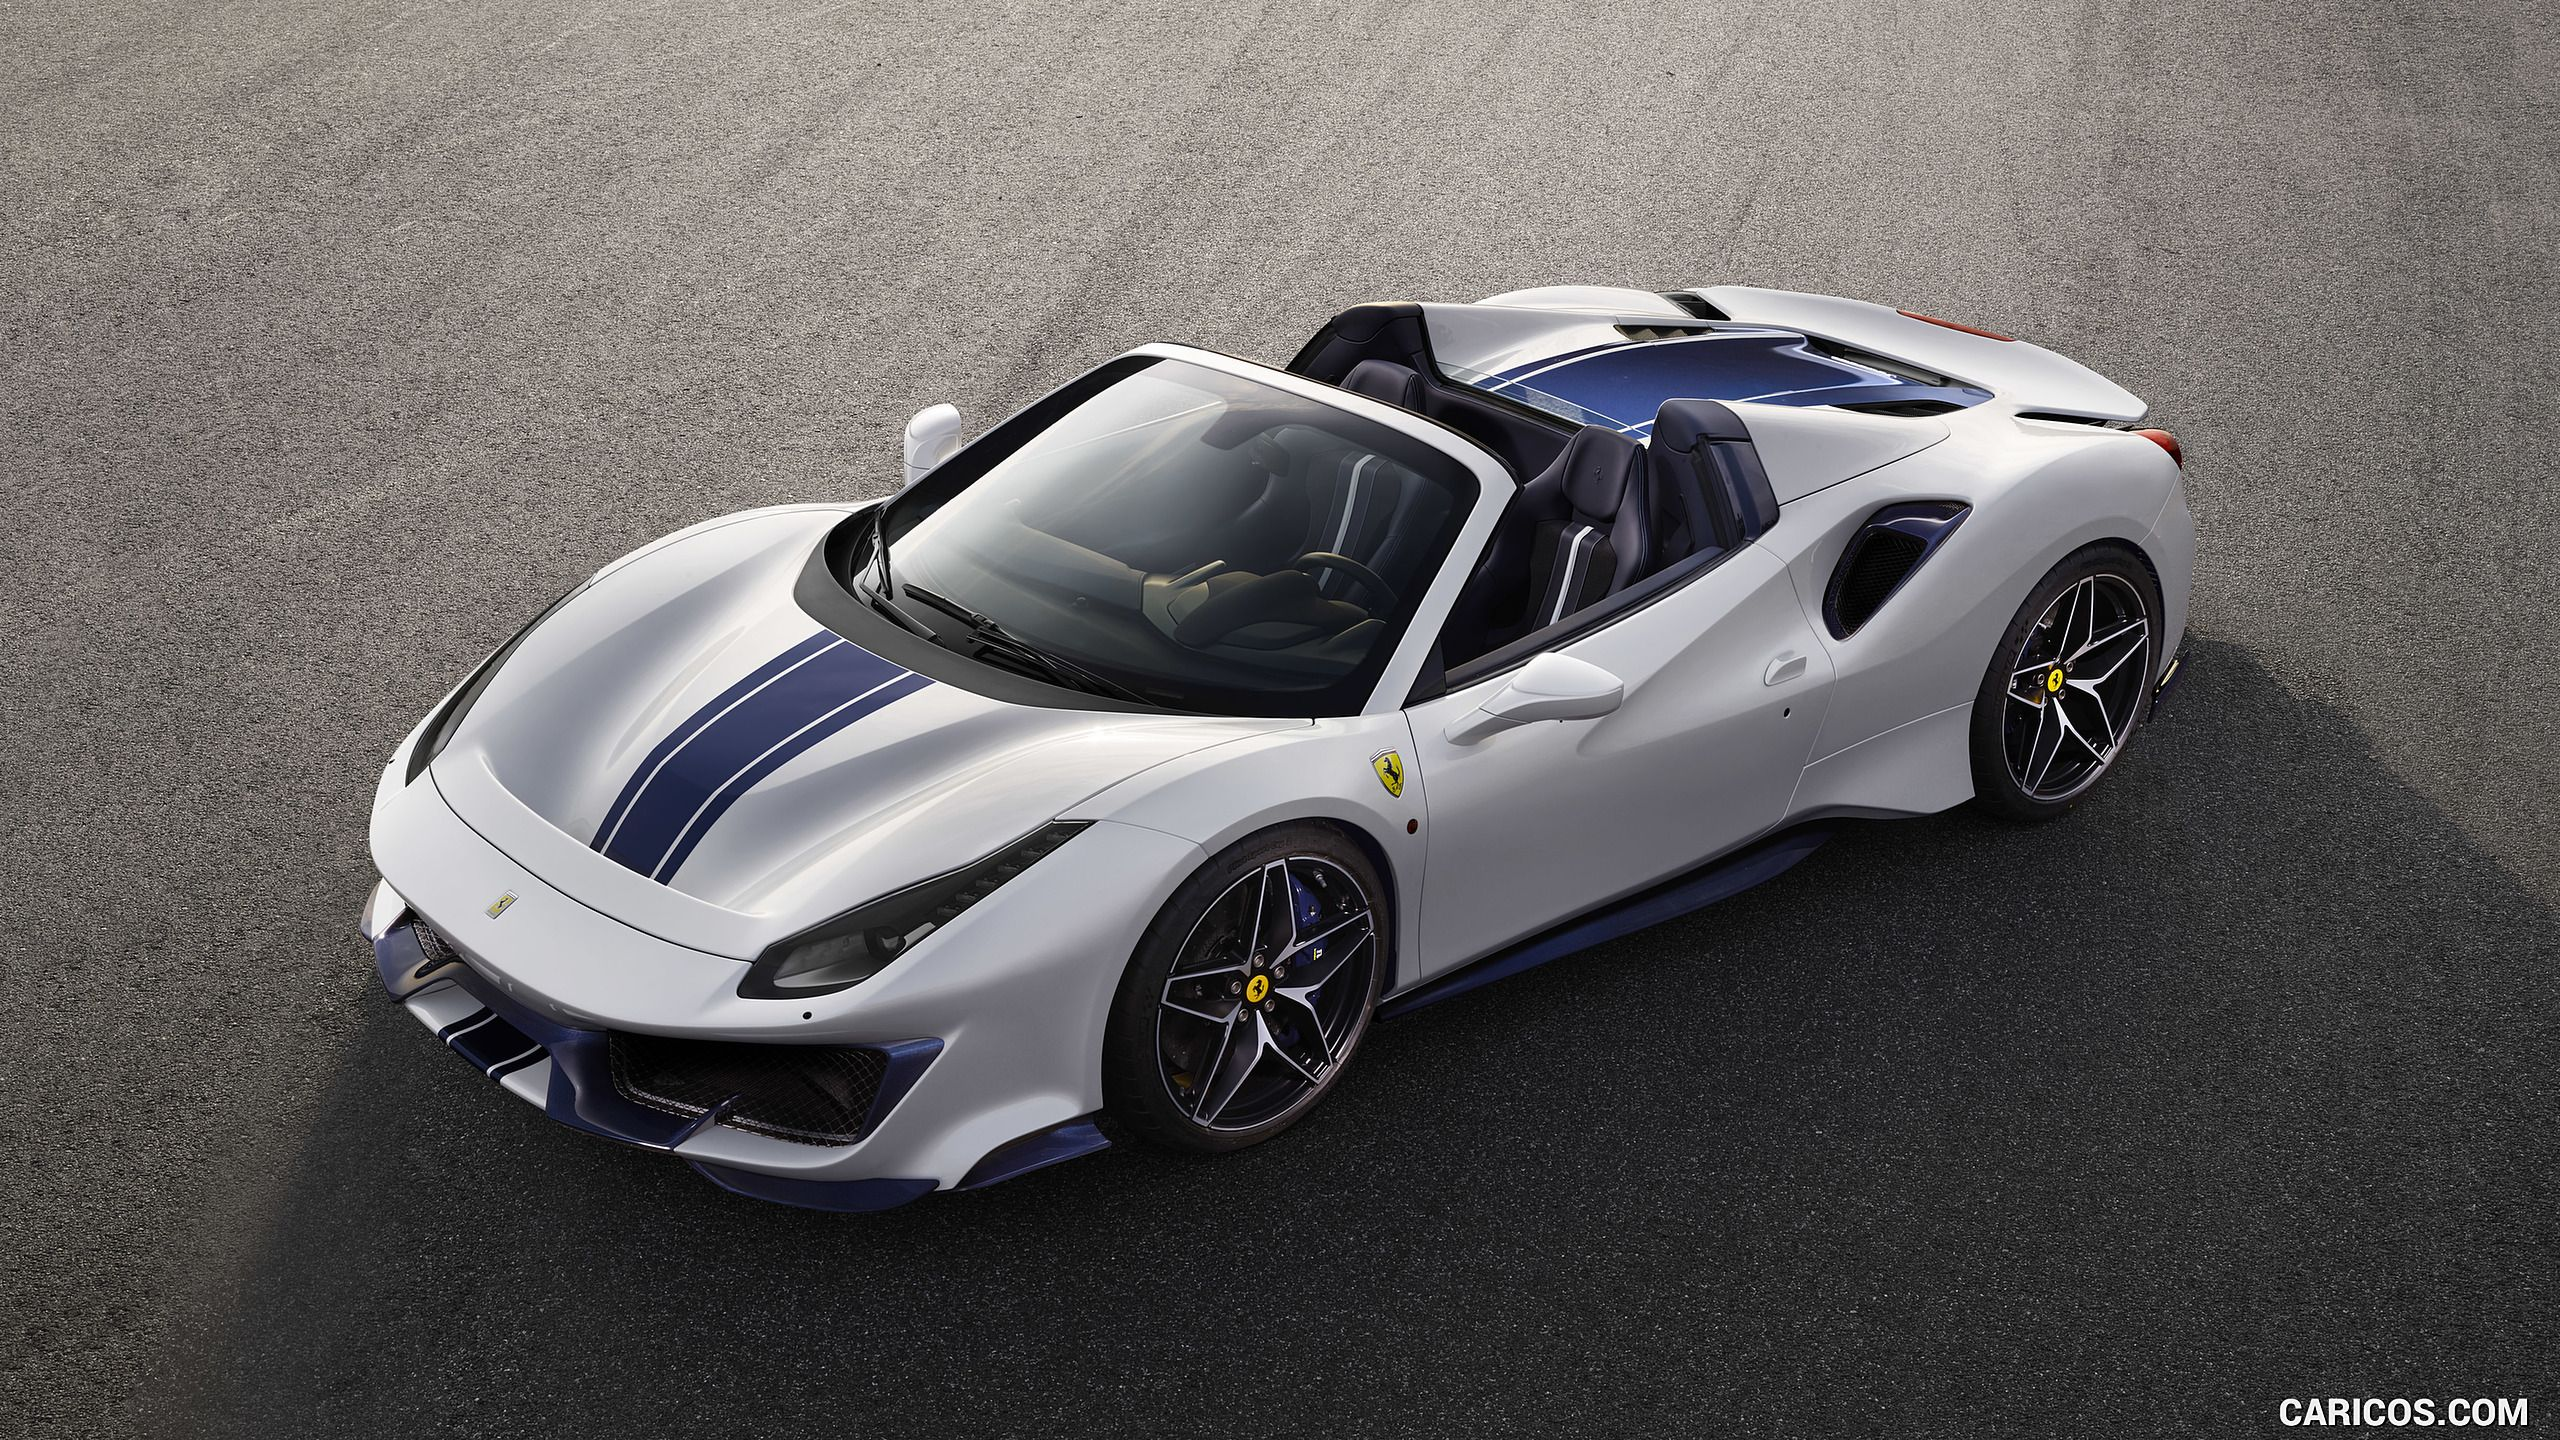 2019 Ferrari 488 Pista Spider With Images Ferrari 488 Ferrari